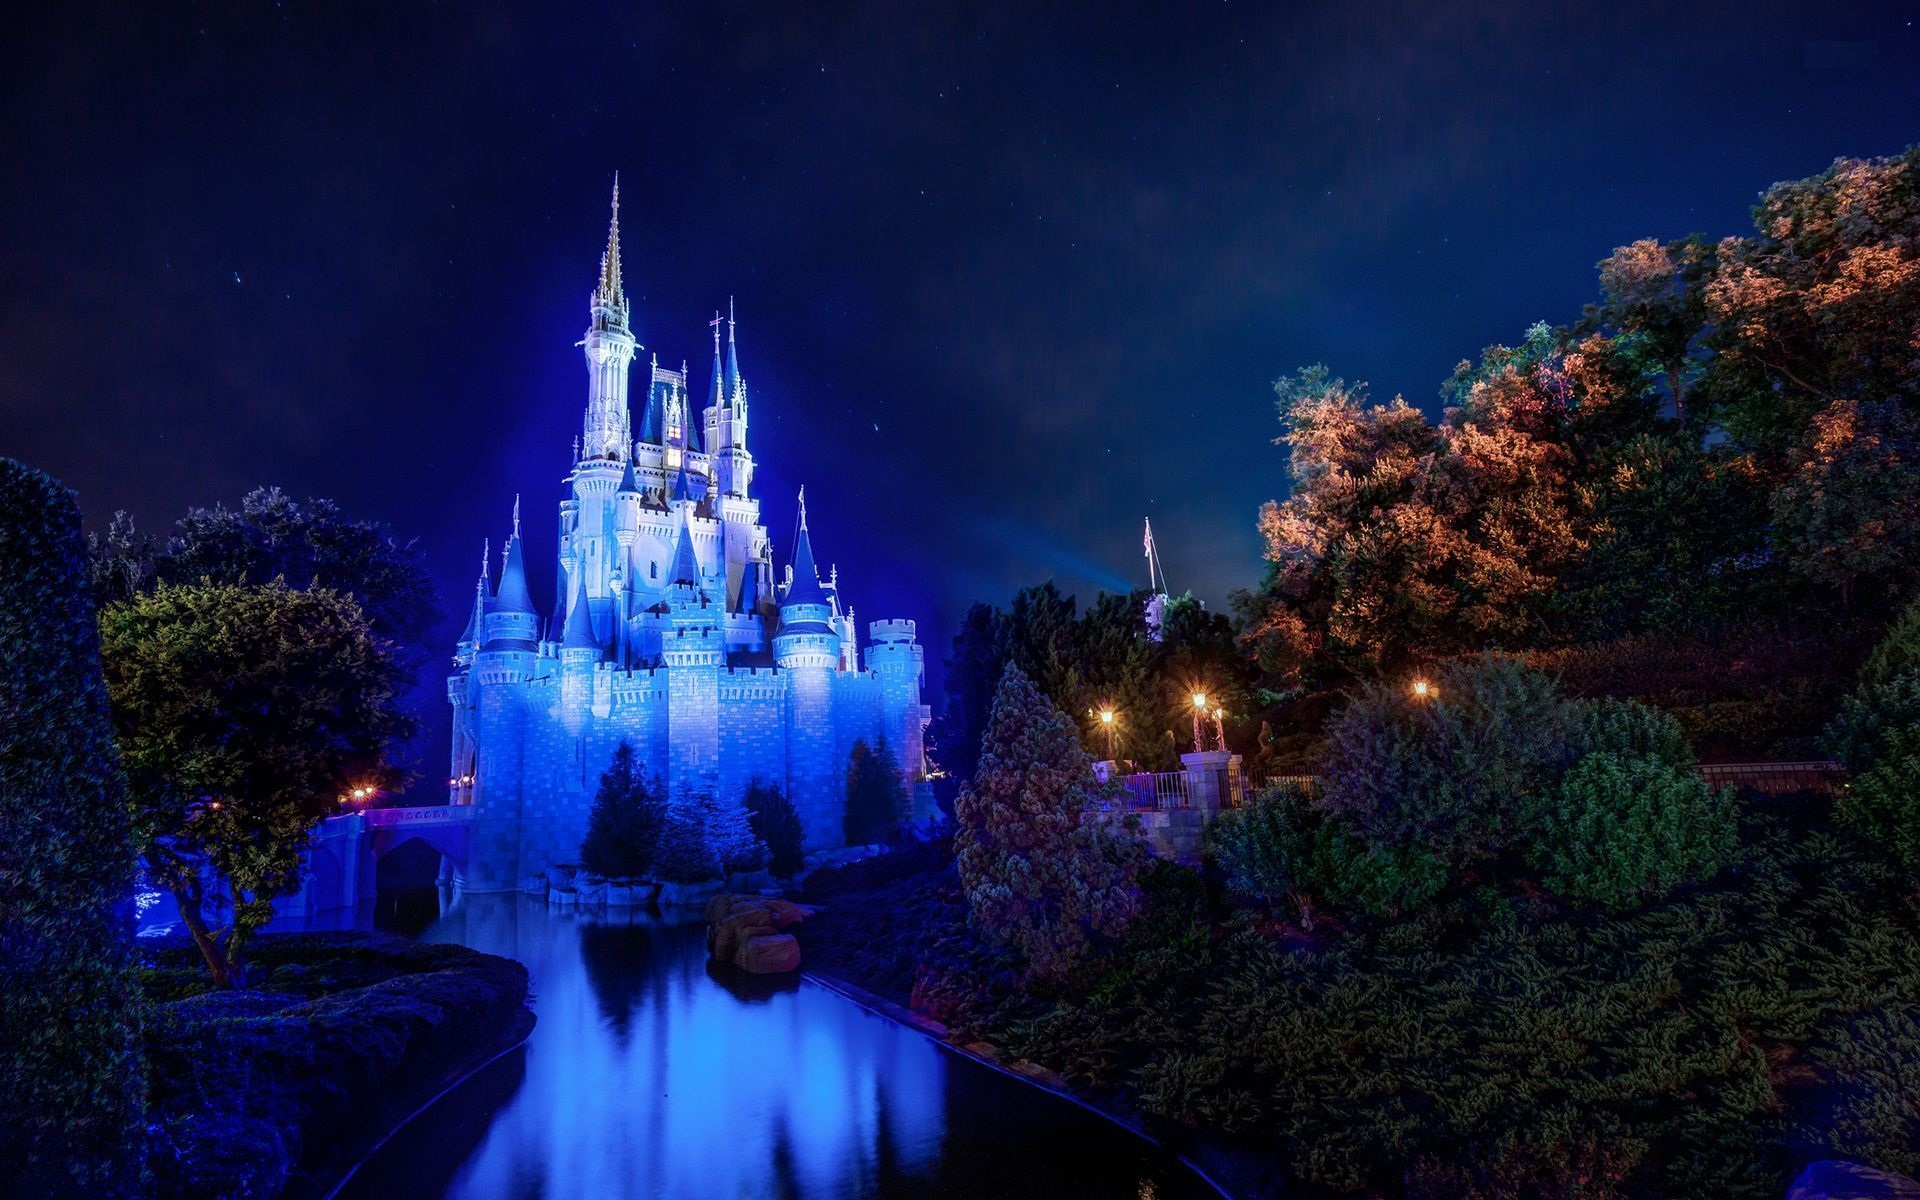 Disney desktop wallpaper wallpapersafari for Wallpaper wallpaper wallpaper